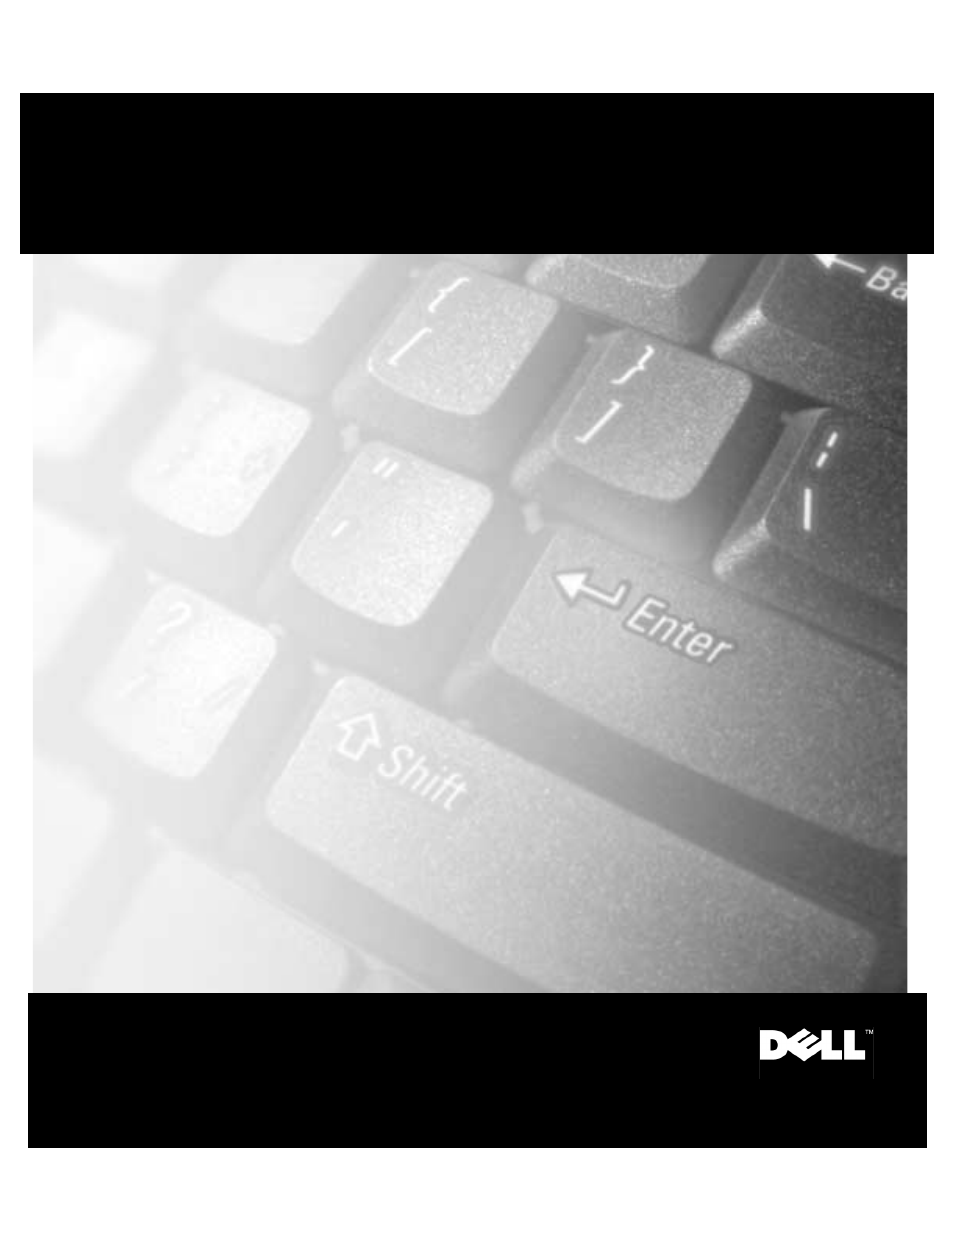 dell latitude c600 user manual 62 pages rh manualsdir com Dell Latitude C600 CD Drive dell latitude c600/c500 service manual